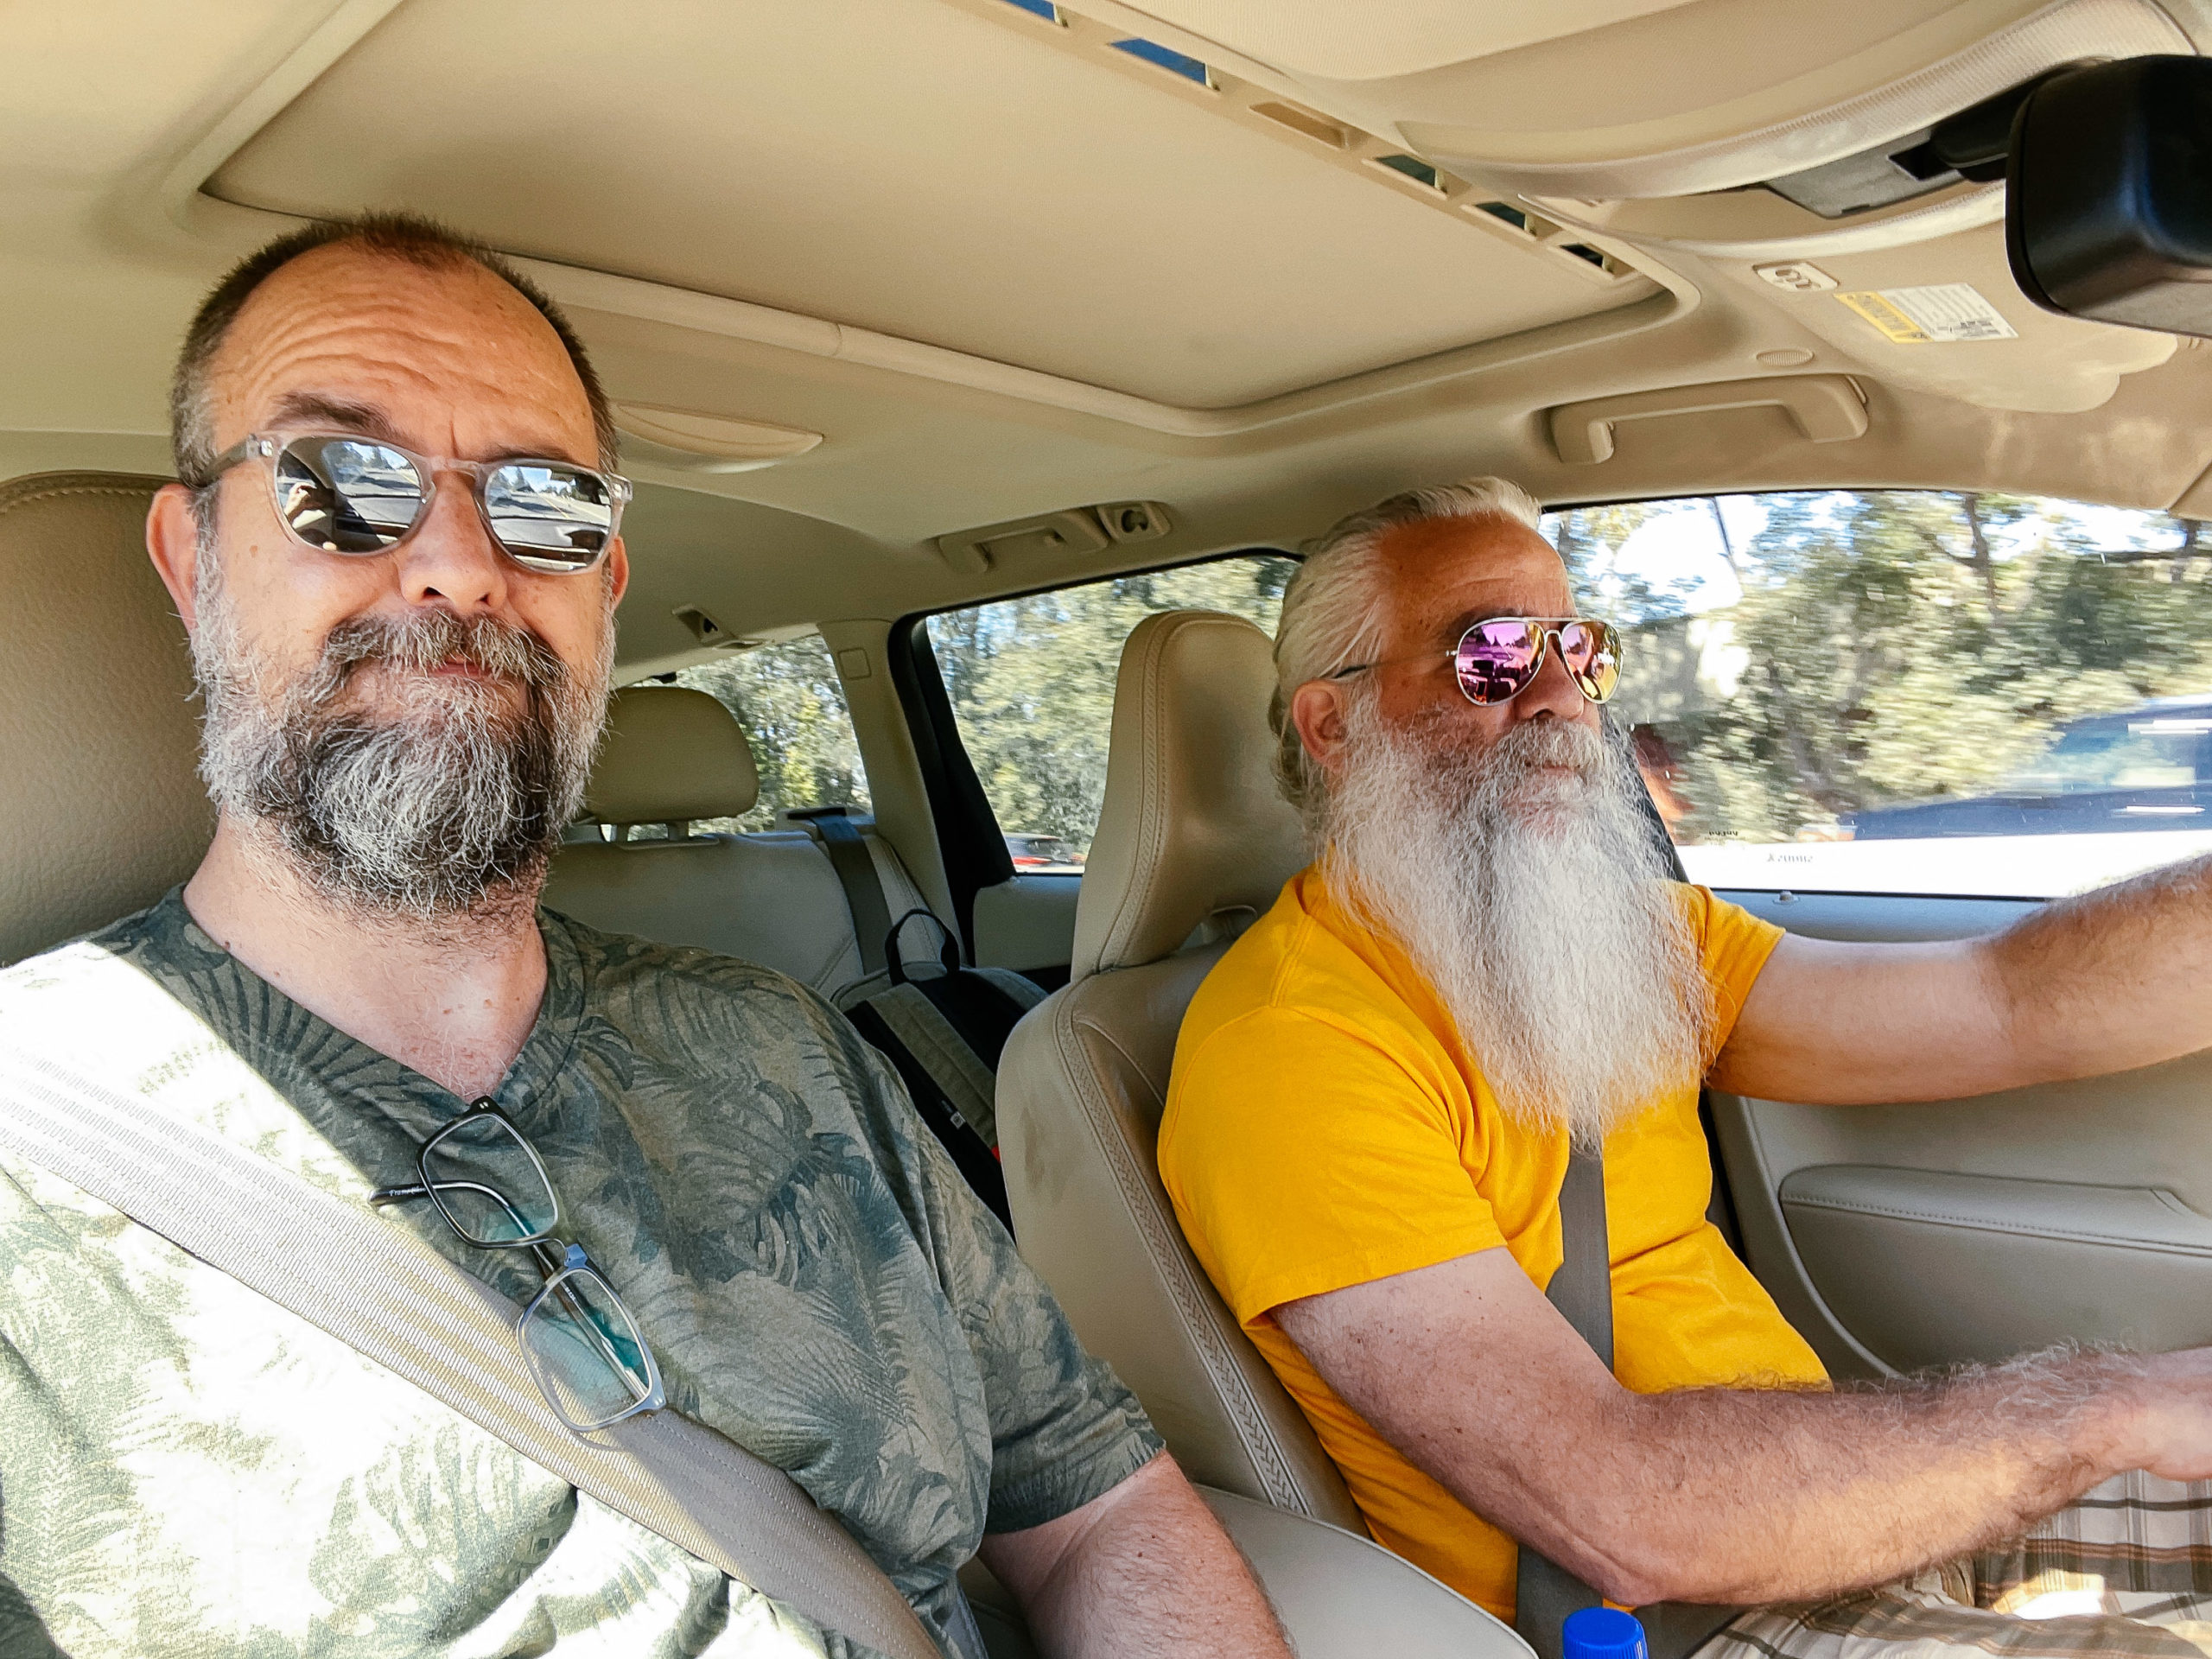 Two bearded men wearing sunglasses in a car with a tan interior